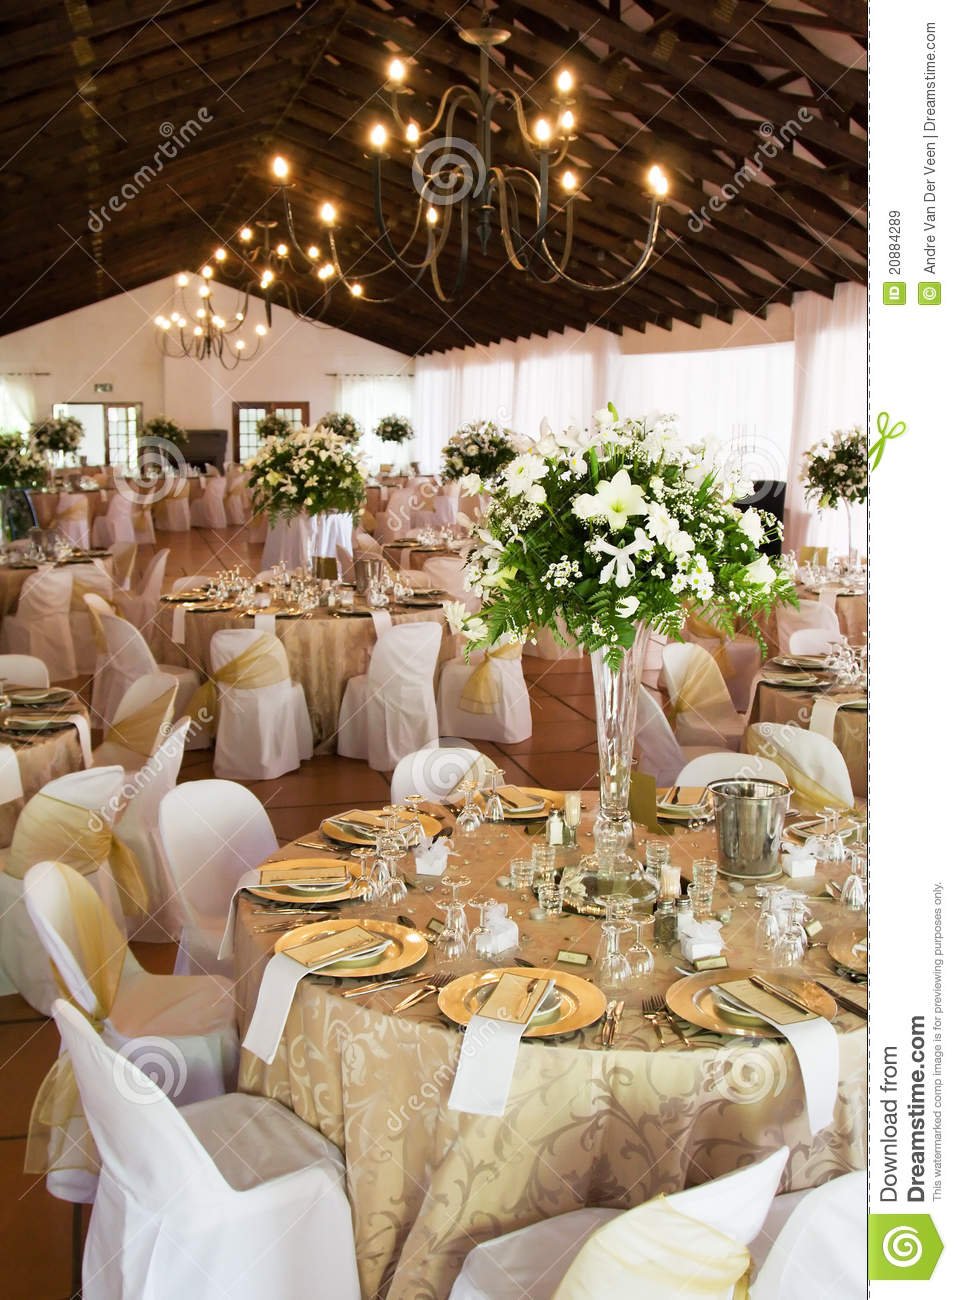 Wedding Reception Hall With Laid Tables Royalty Free Stock